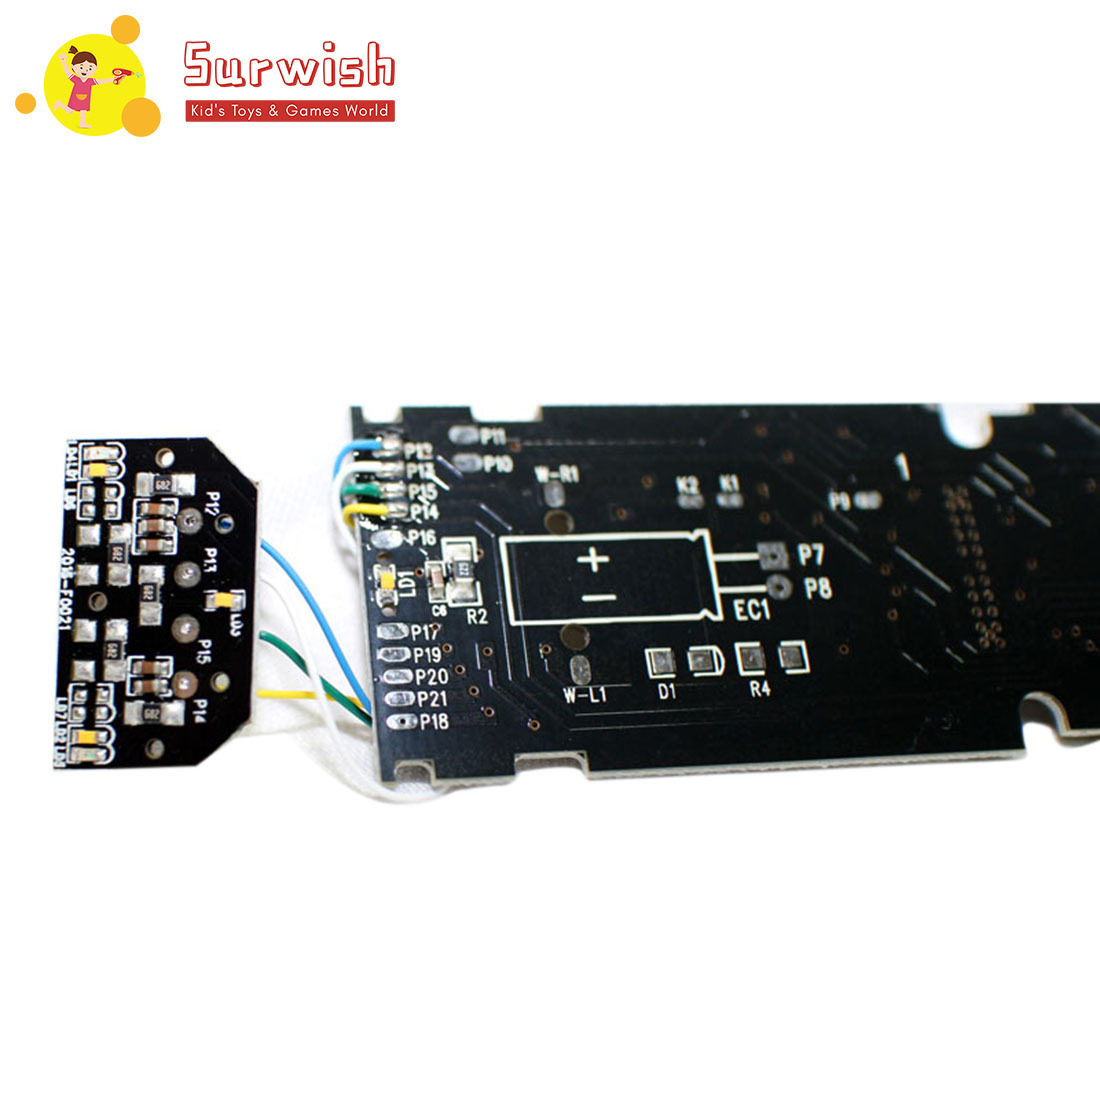 HO 1:87 Scale Train Model PCB Circuit Board With LED Light Sound For Sand Table - Upgrade Version